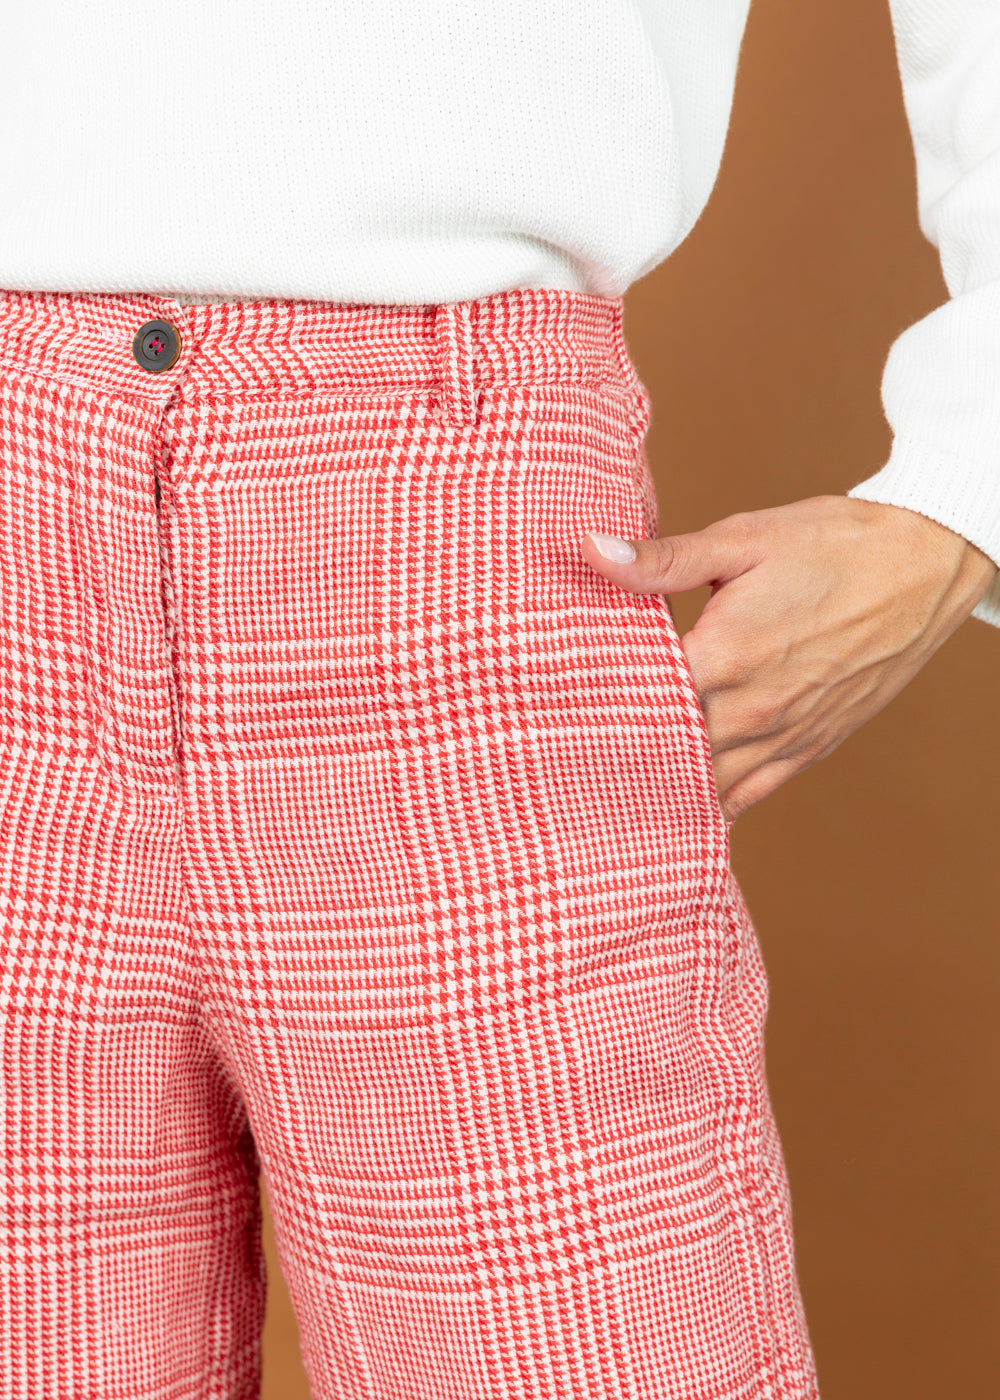 Hannoh Wessel Petronilla Pants